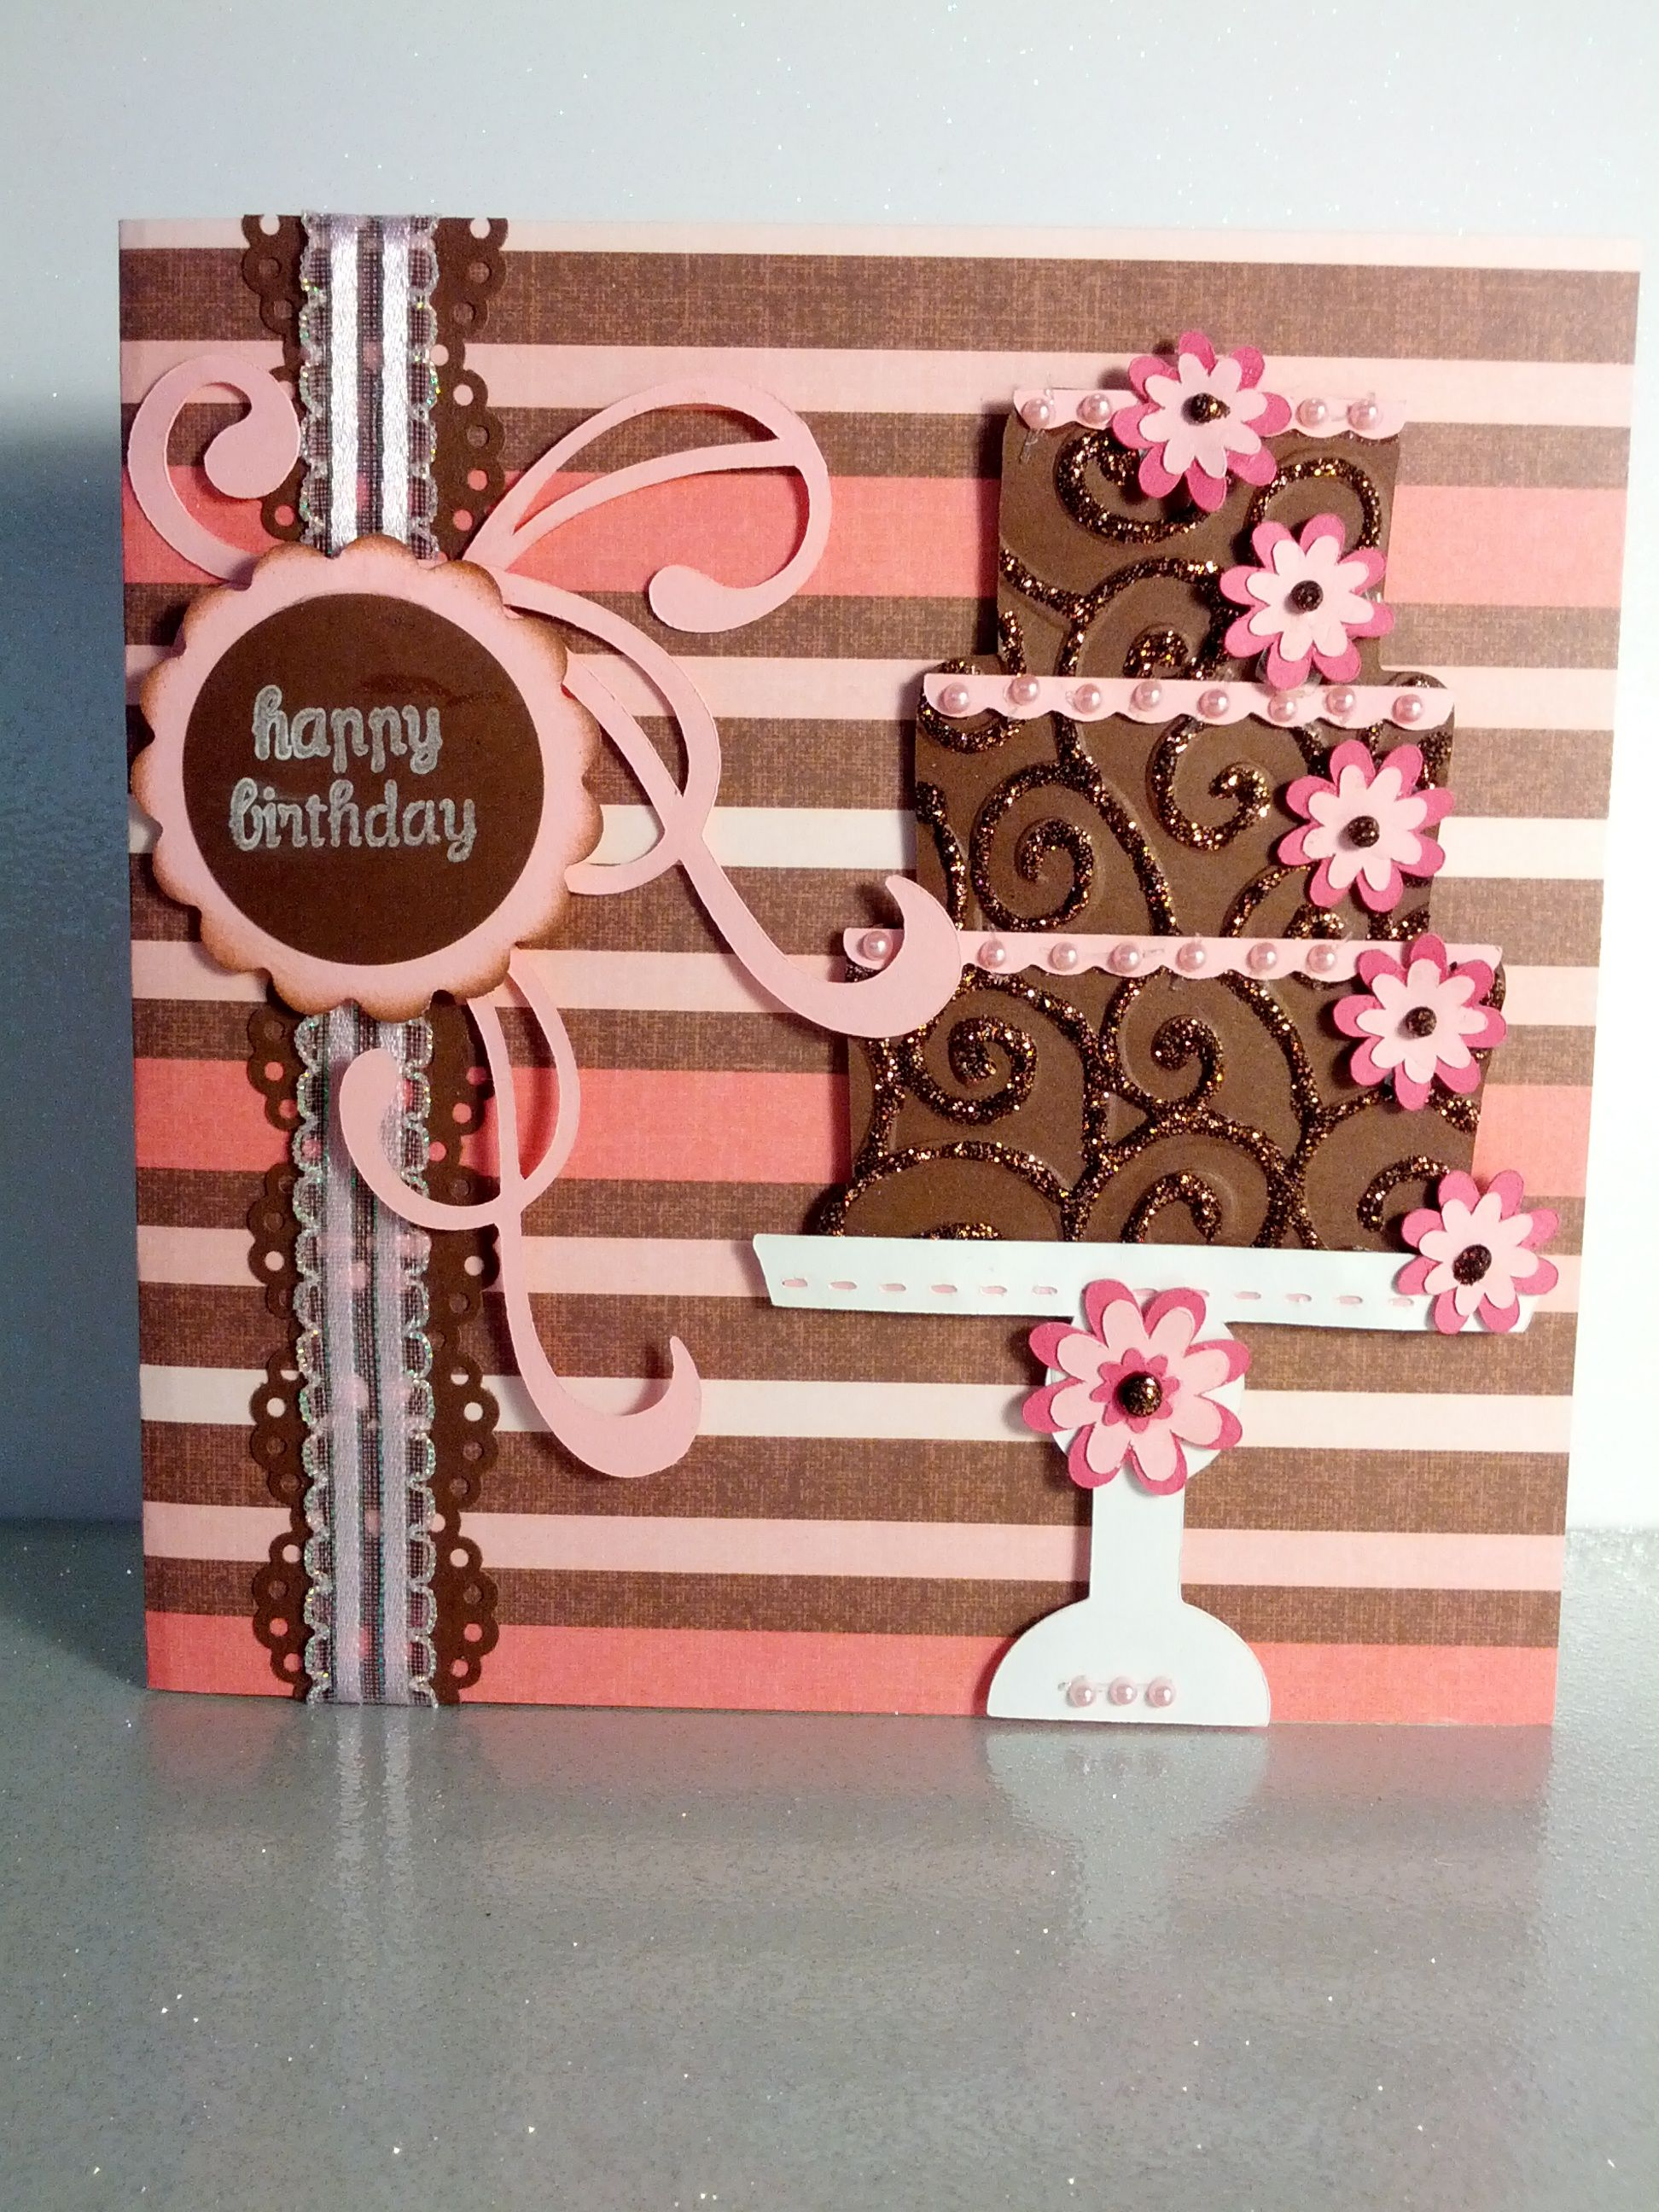 Happy Birthday Cake card like the swirls on cake – Sophisticated Birthday Cards